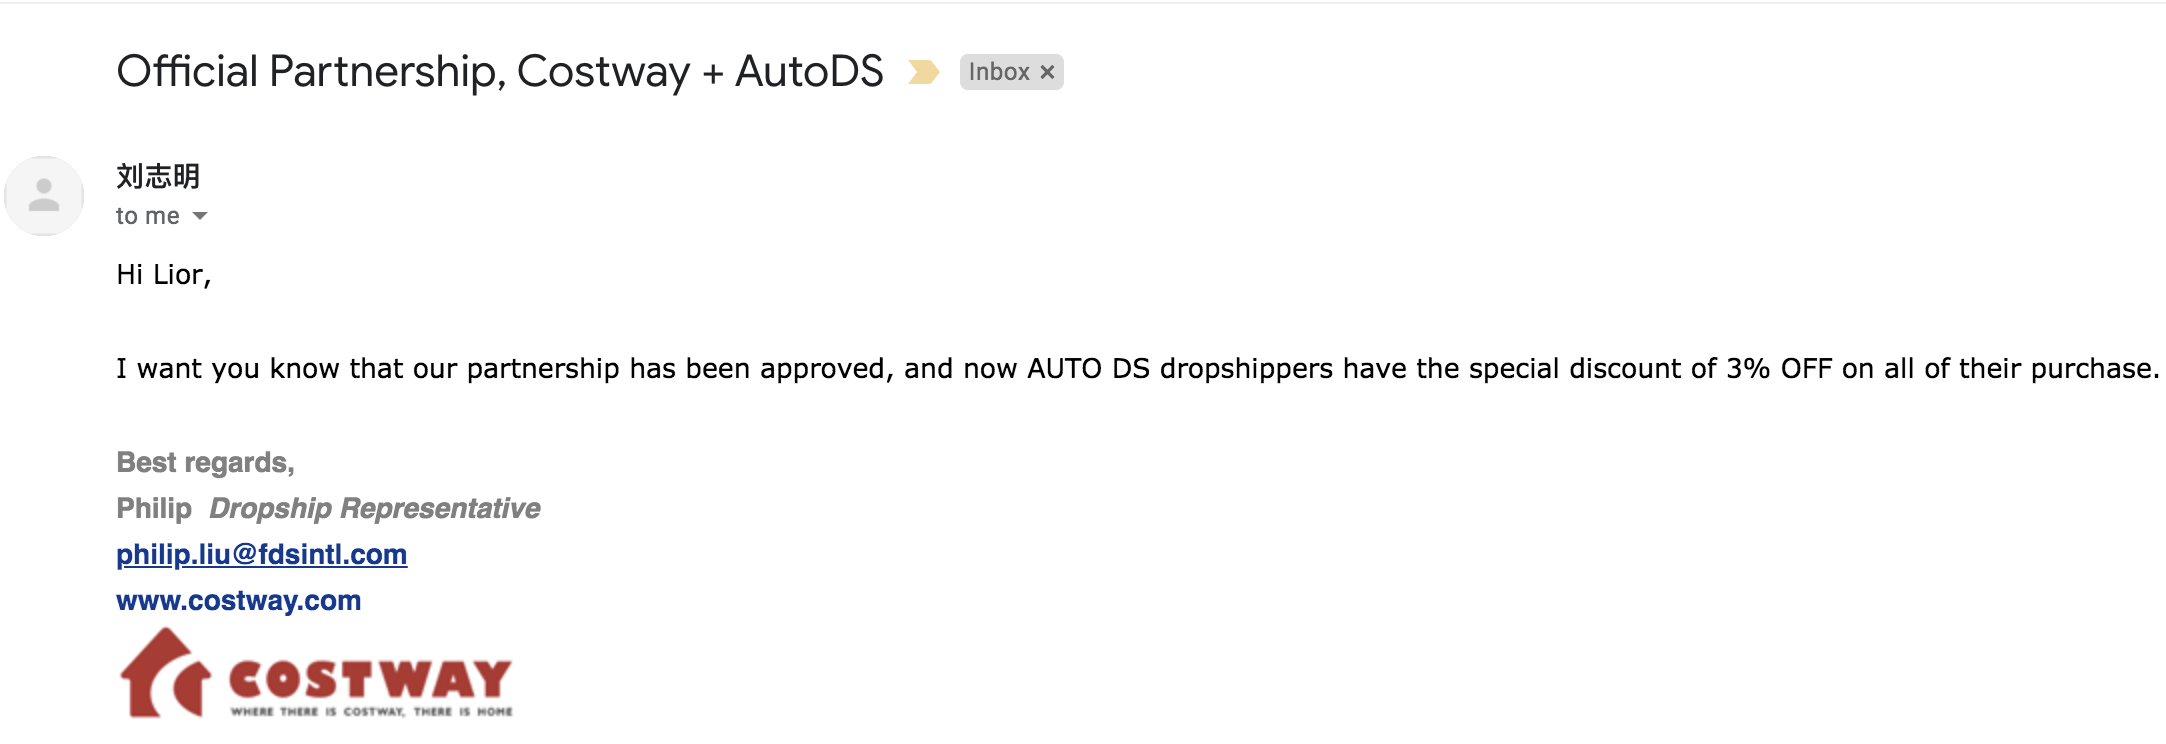 official partnership between AutoDS and Costway